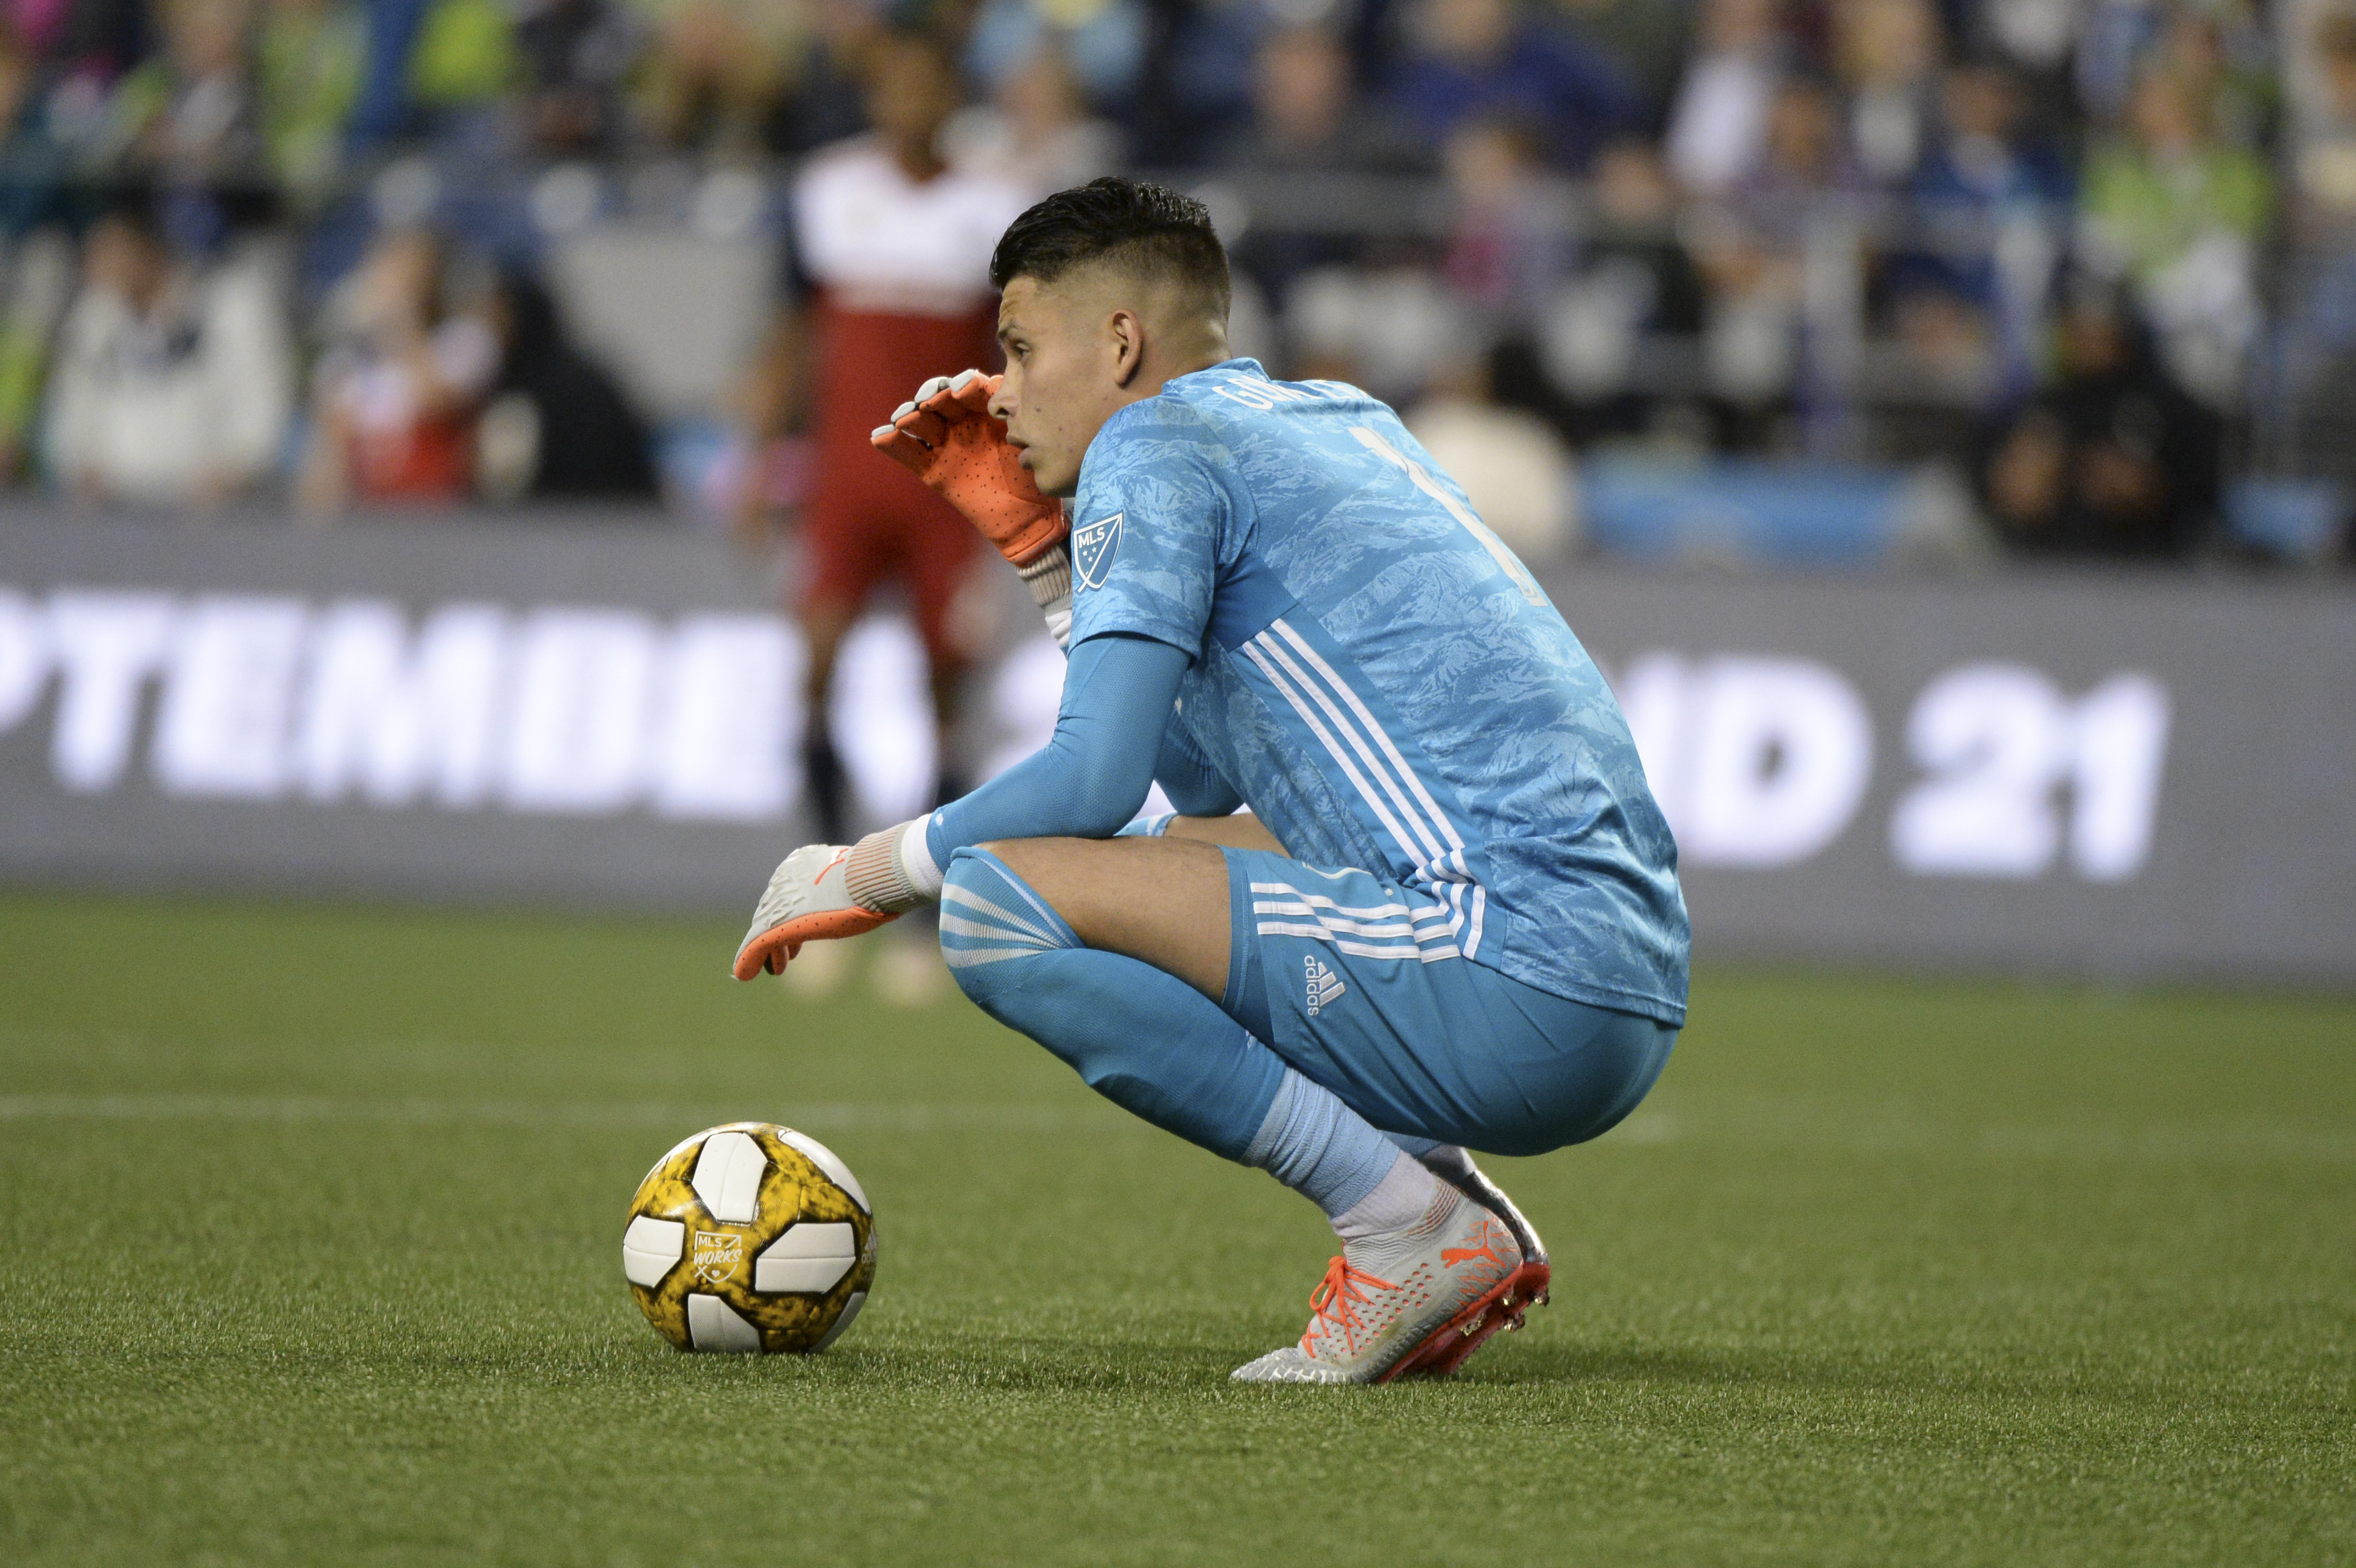 SOCCER: SEP 18 MLS - FC Dallas at Seattle Sounders FC